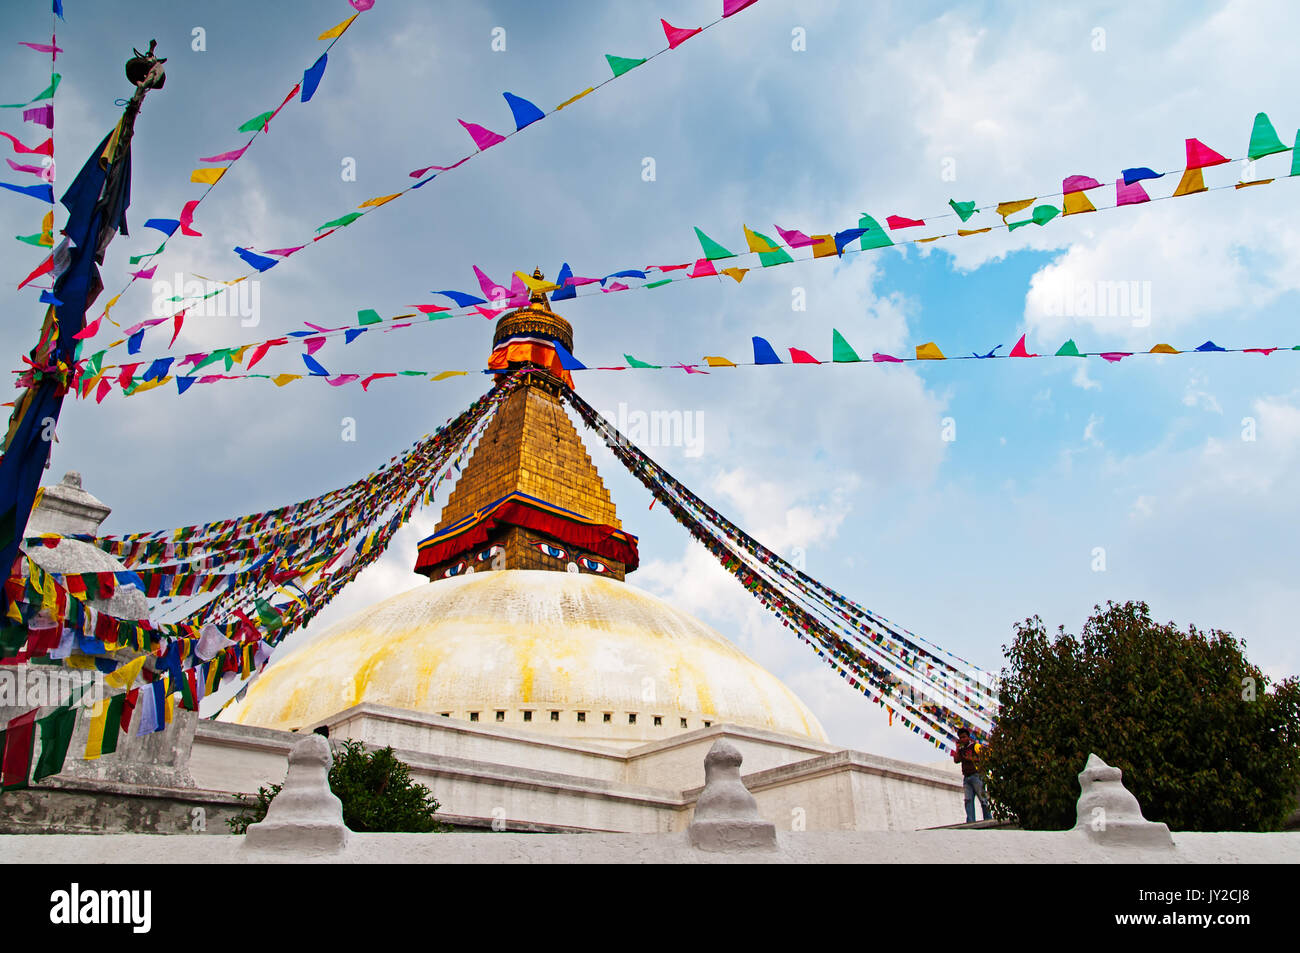 Bodhnath Stupa Temple and praying flag. Boudhanath Stupa (or Bodnath Stupa) is the largest stupa in Nepal and the holiest Tibetan Buddhist temple outs - Stock Image